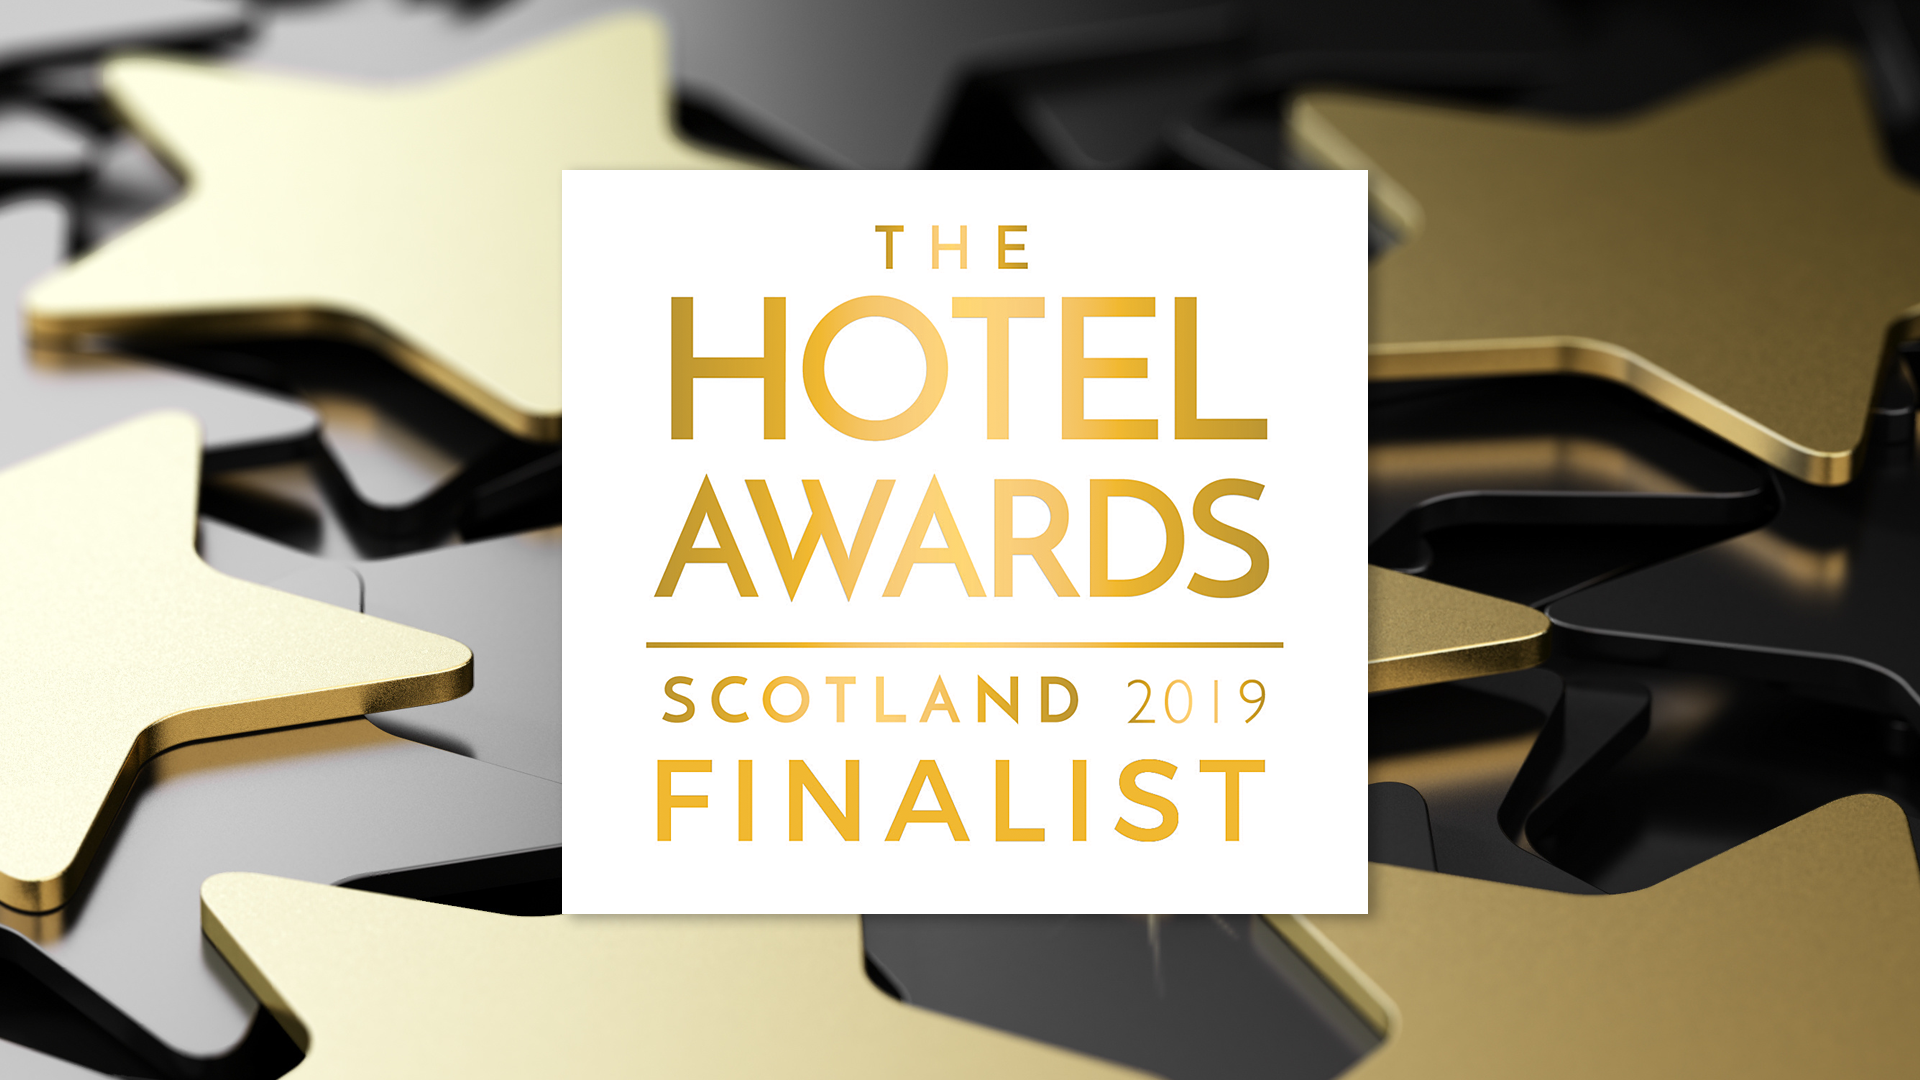 Park Hotel - The Hotel Awards Scotland 2019